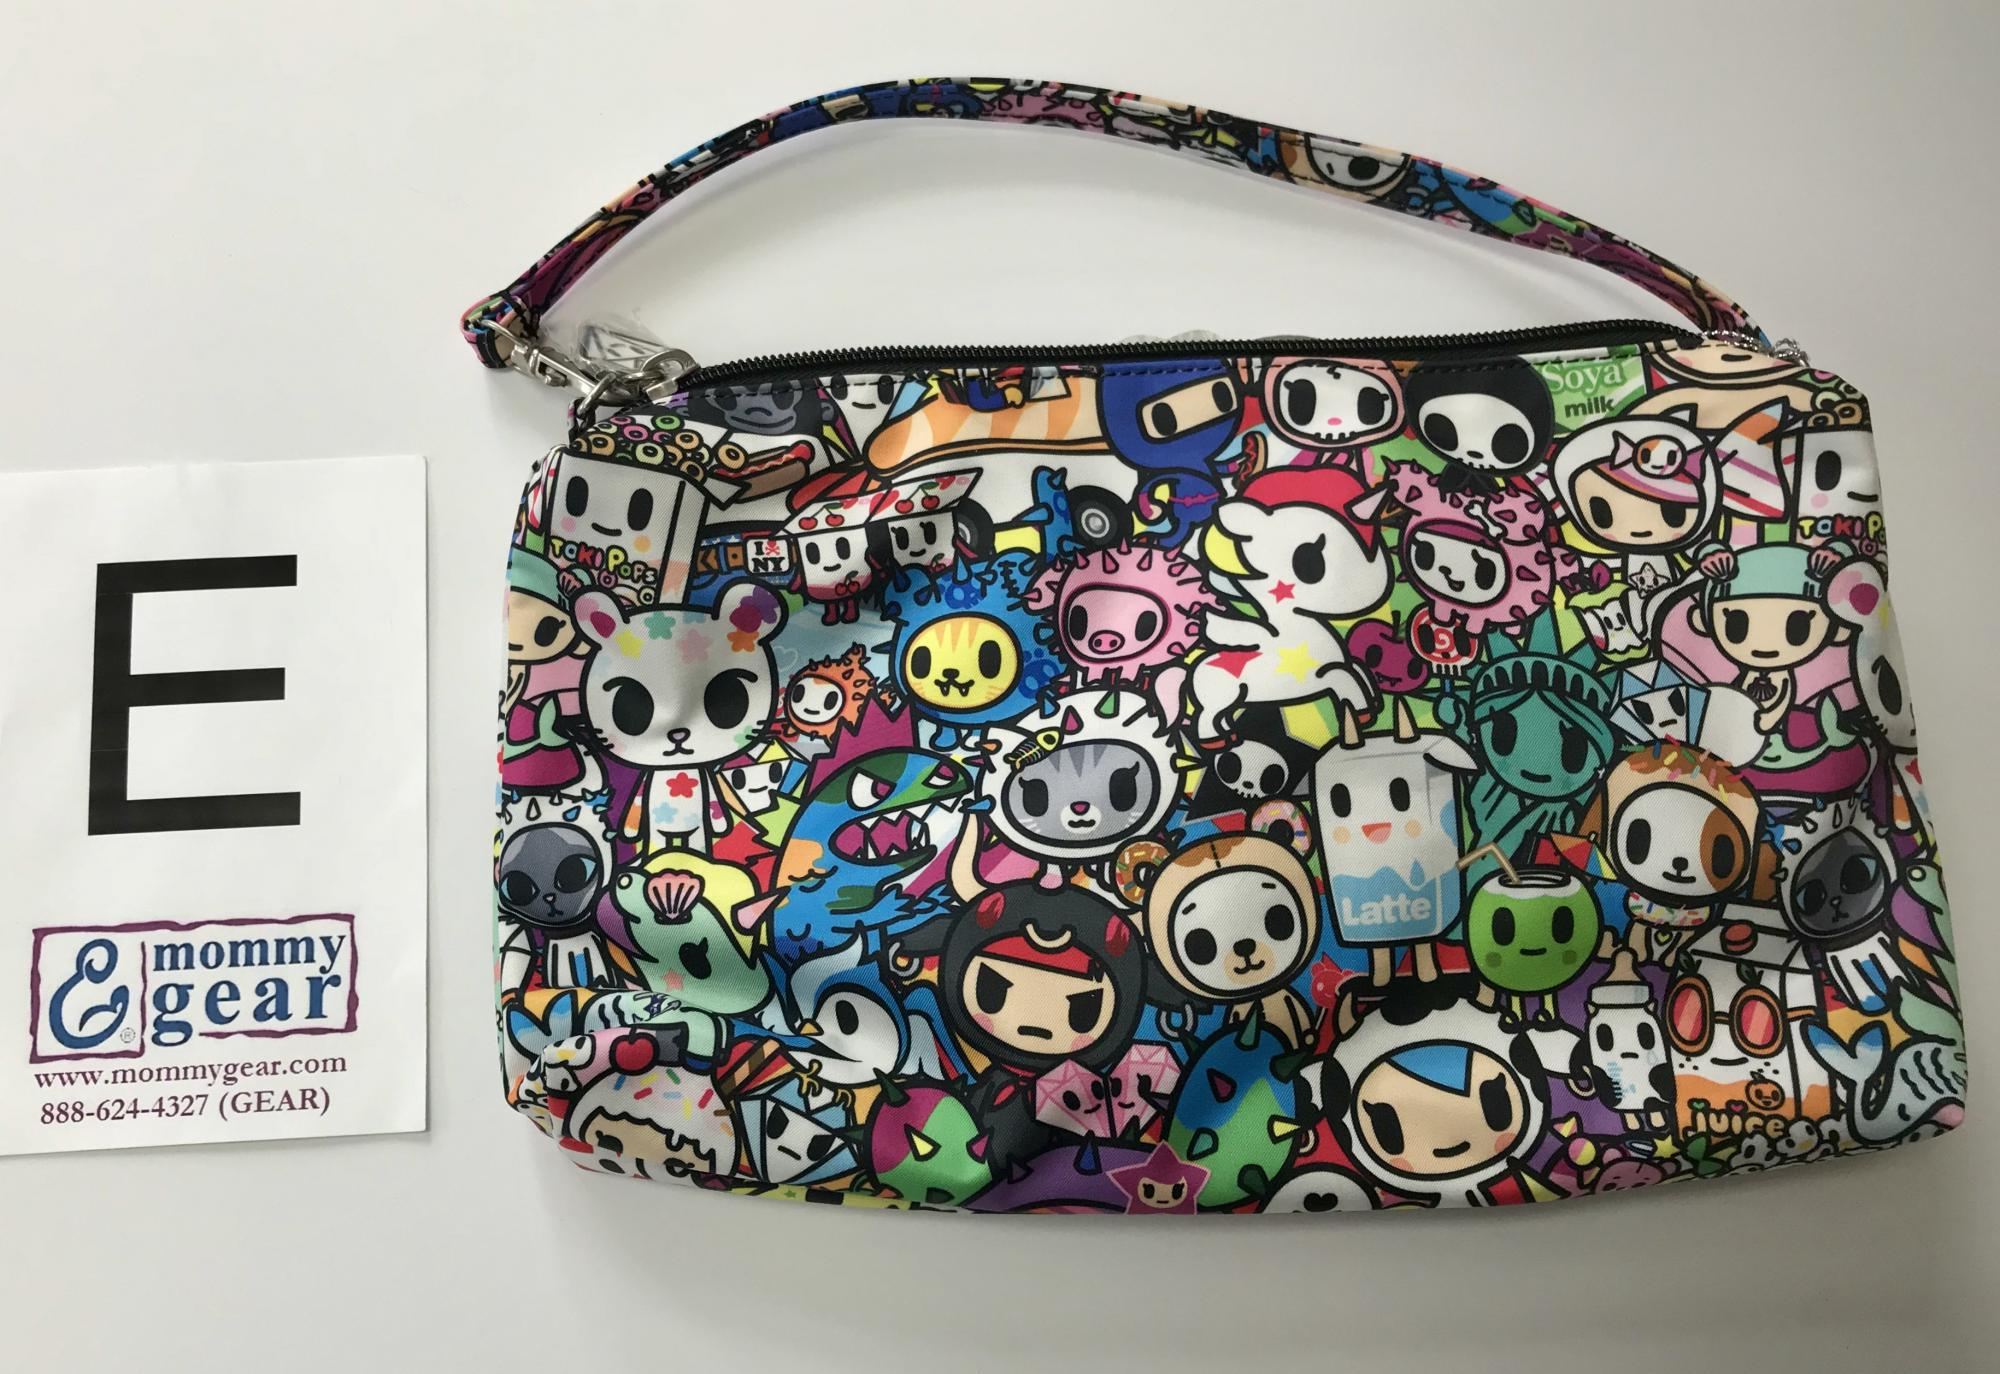 ju-ju-be-tokidoki-iconic-2.0-be-quick-pp-e-2.jpg